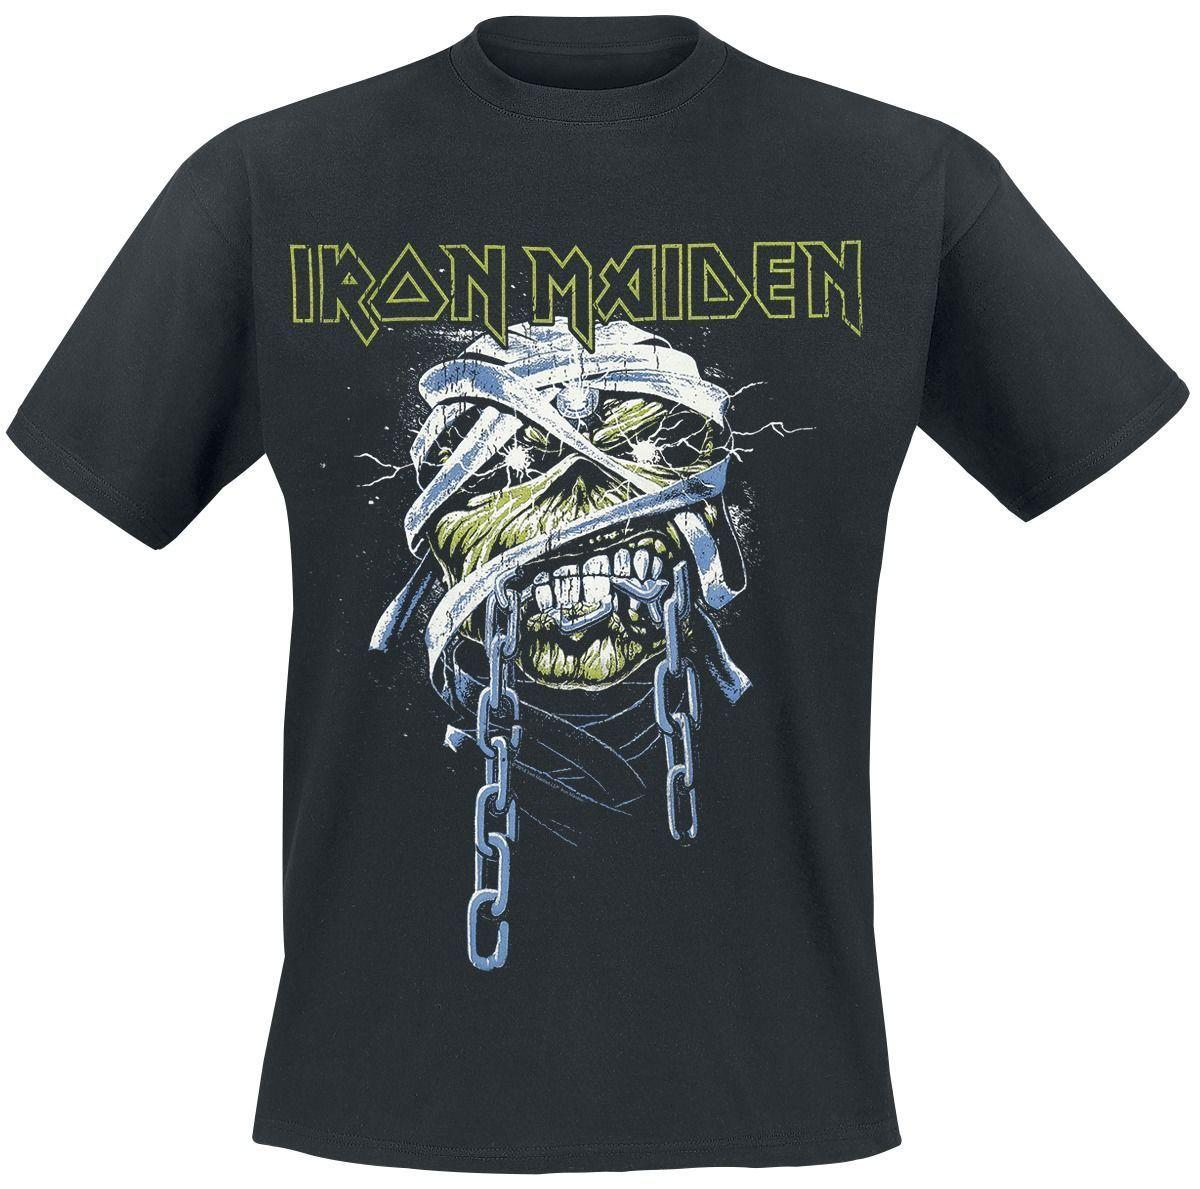 af107043d Iron Maiden Powerslave Head T Shirt Black Cool Shirts Online All Shirts  From Besttshirts201805, $10.66| DHgate.Com